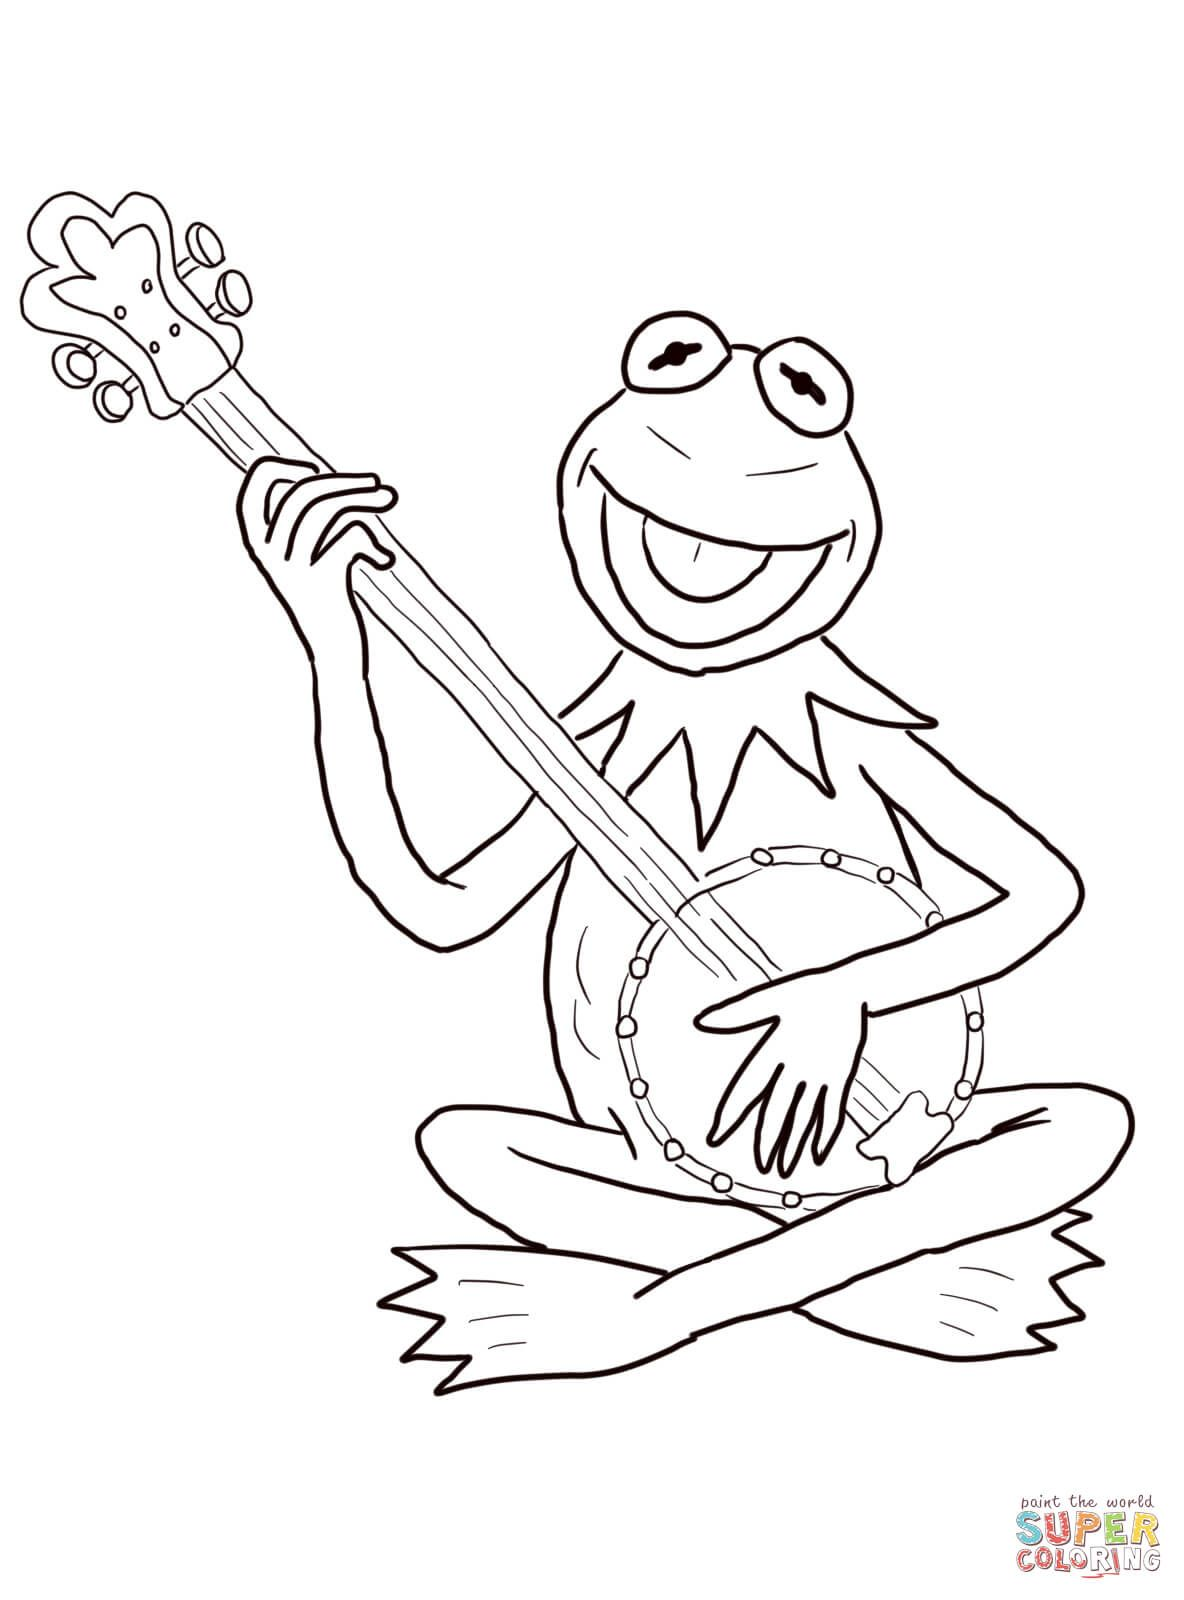 kermit the frog plays guitar coloring pagejpg 11841600